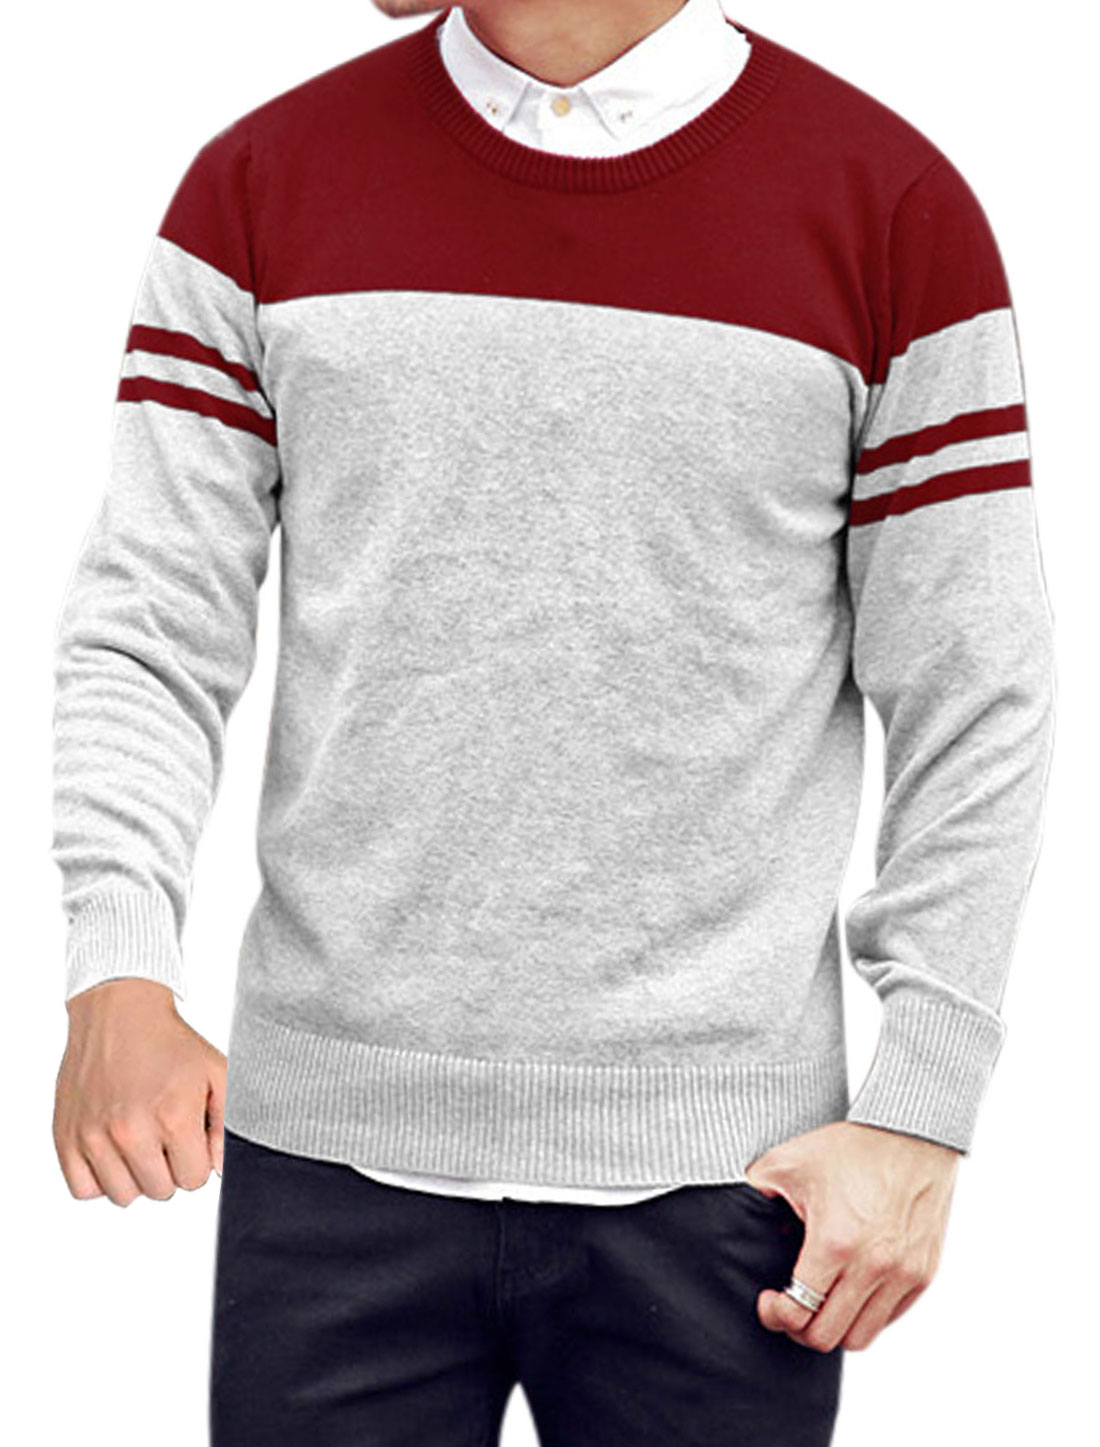 Men Color Block Round Neck Long Sleeve Casual Sweater Light Gray Red M